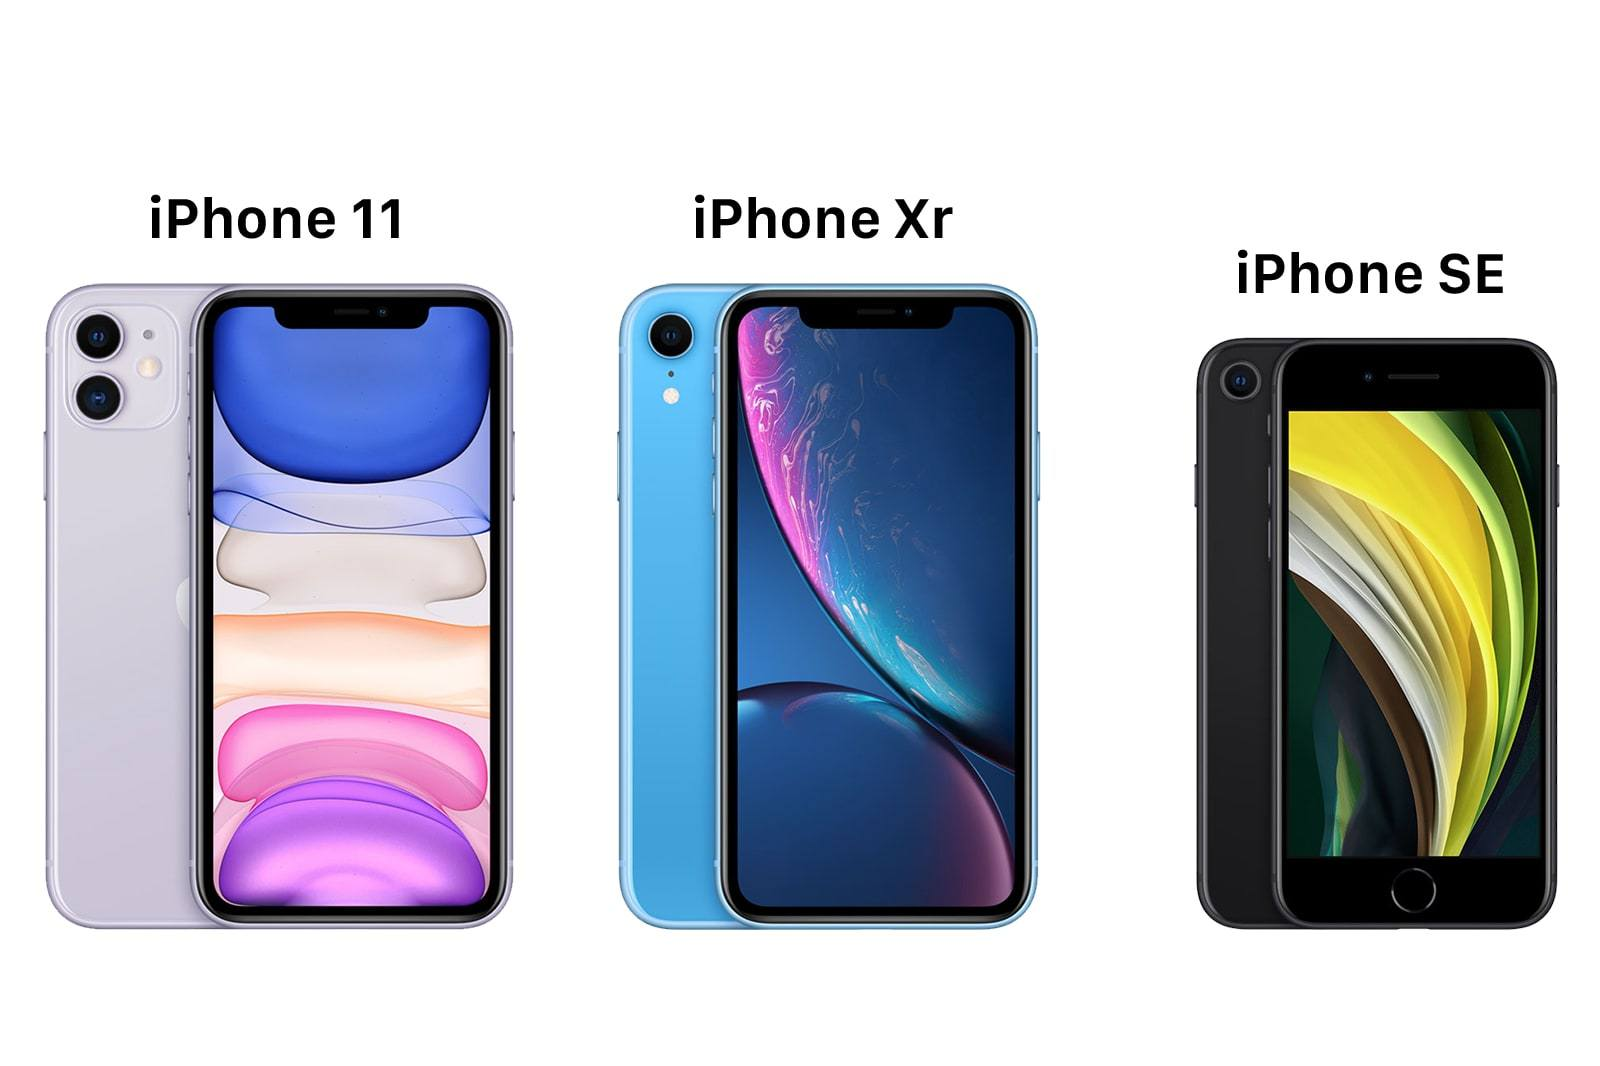 iPhone SE 2020 vs iPhone XR vs iPhone 11 01